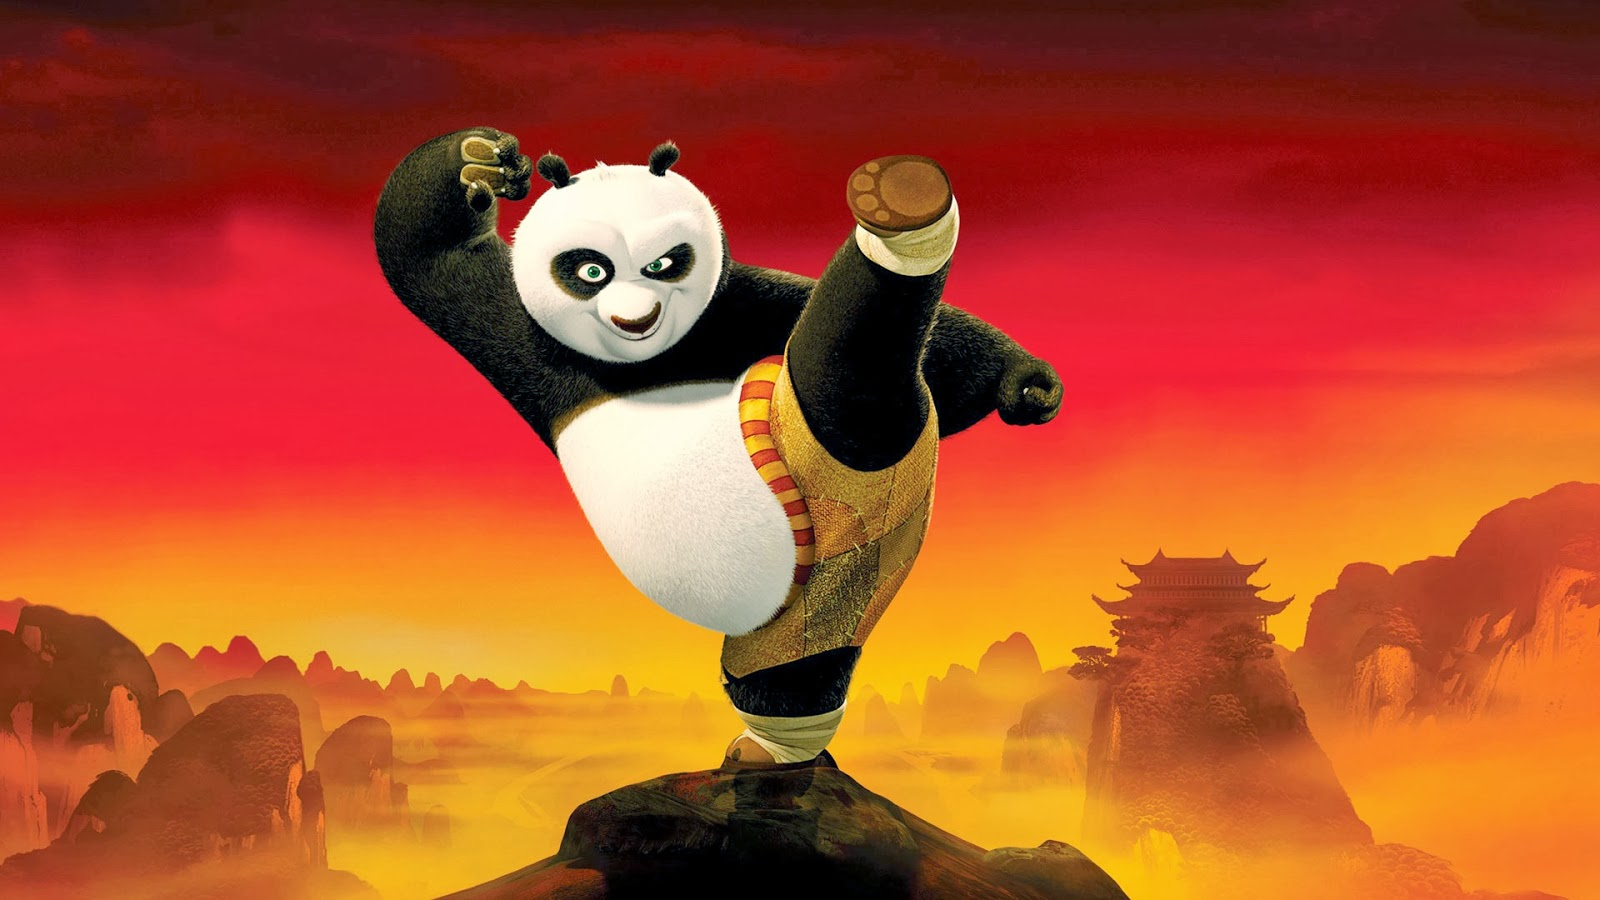 kung fu panda hd wallpapers - beautiful desktop wallpapers 2014